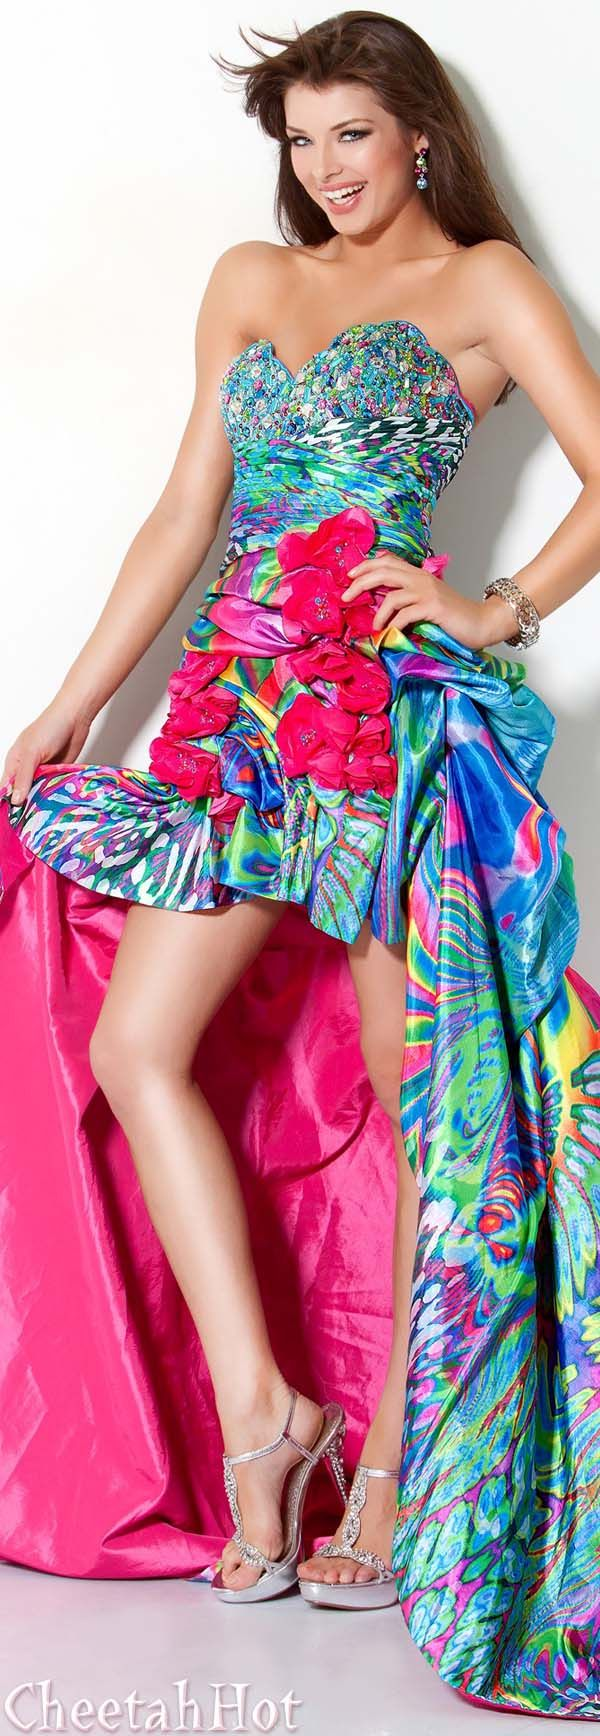 best prom dress images on pinterest belly dancers marriage